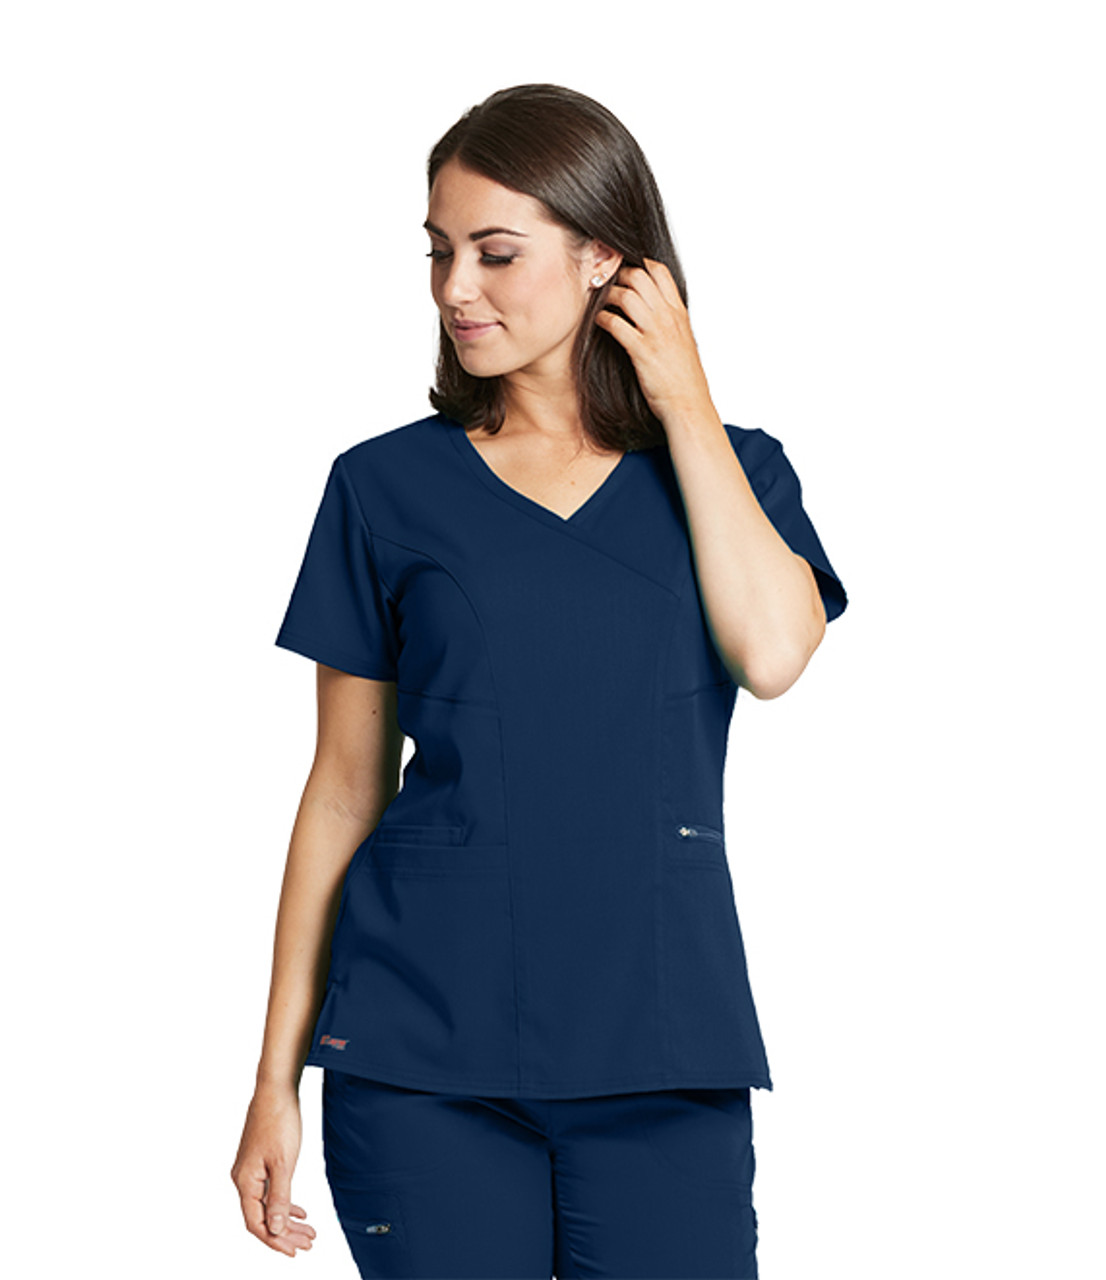 Grey s Anatomy GRST001 Women s Scrub Top. This top is made with top notch  stretch fabric that is essential for the busy workday of healthcare  professionals. 486bd8206f66